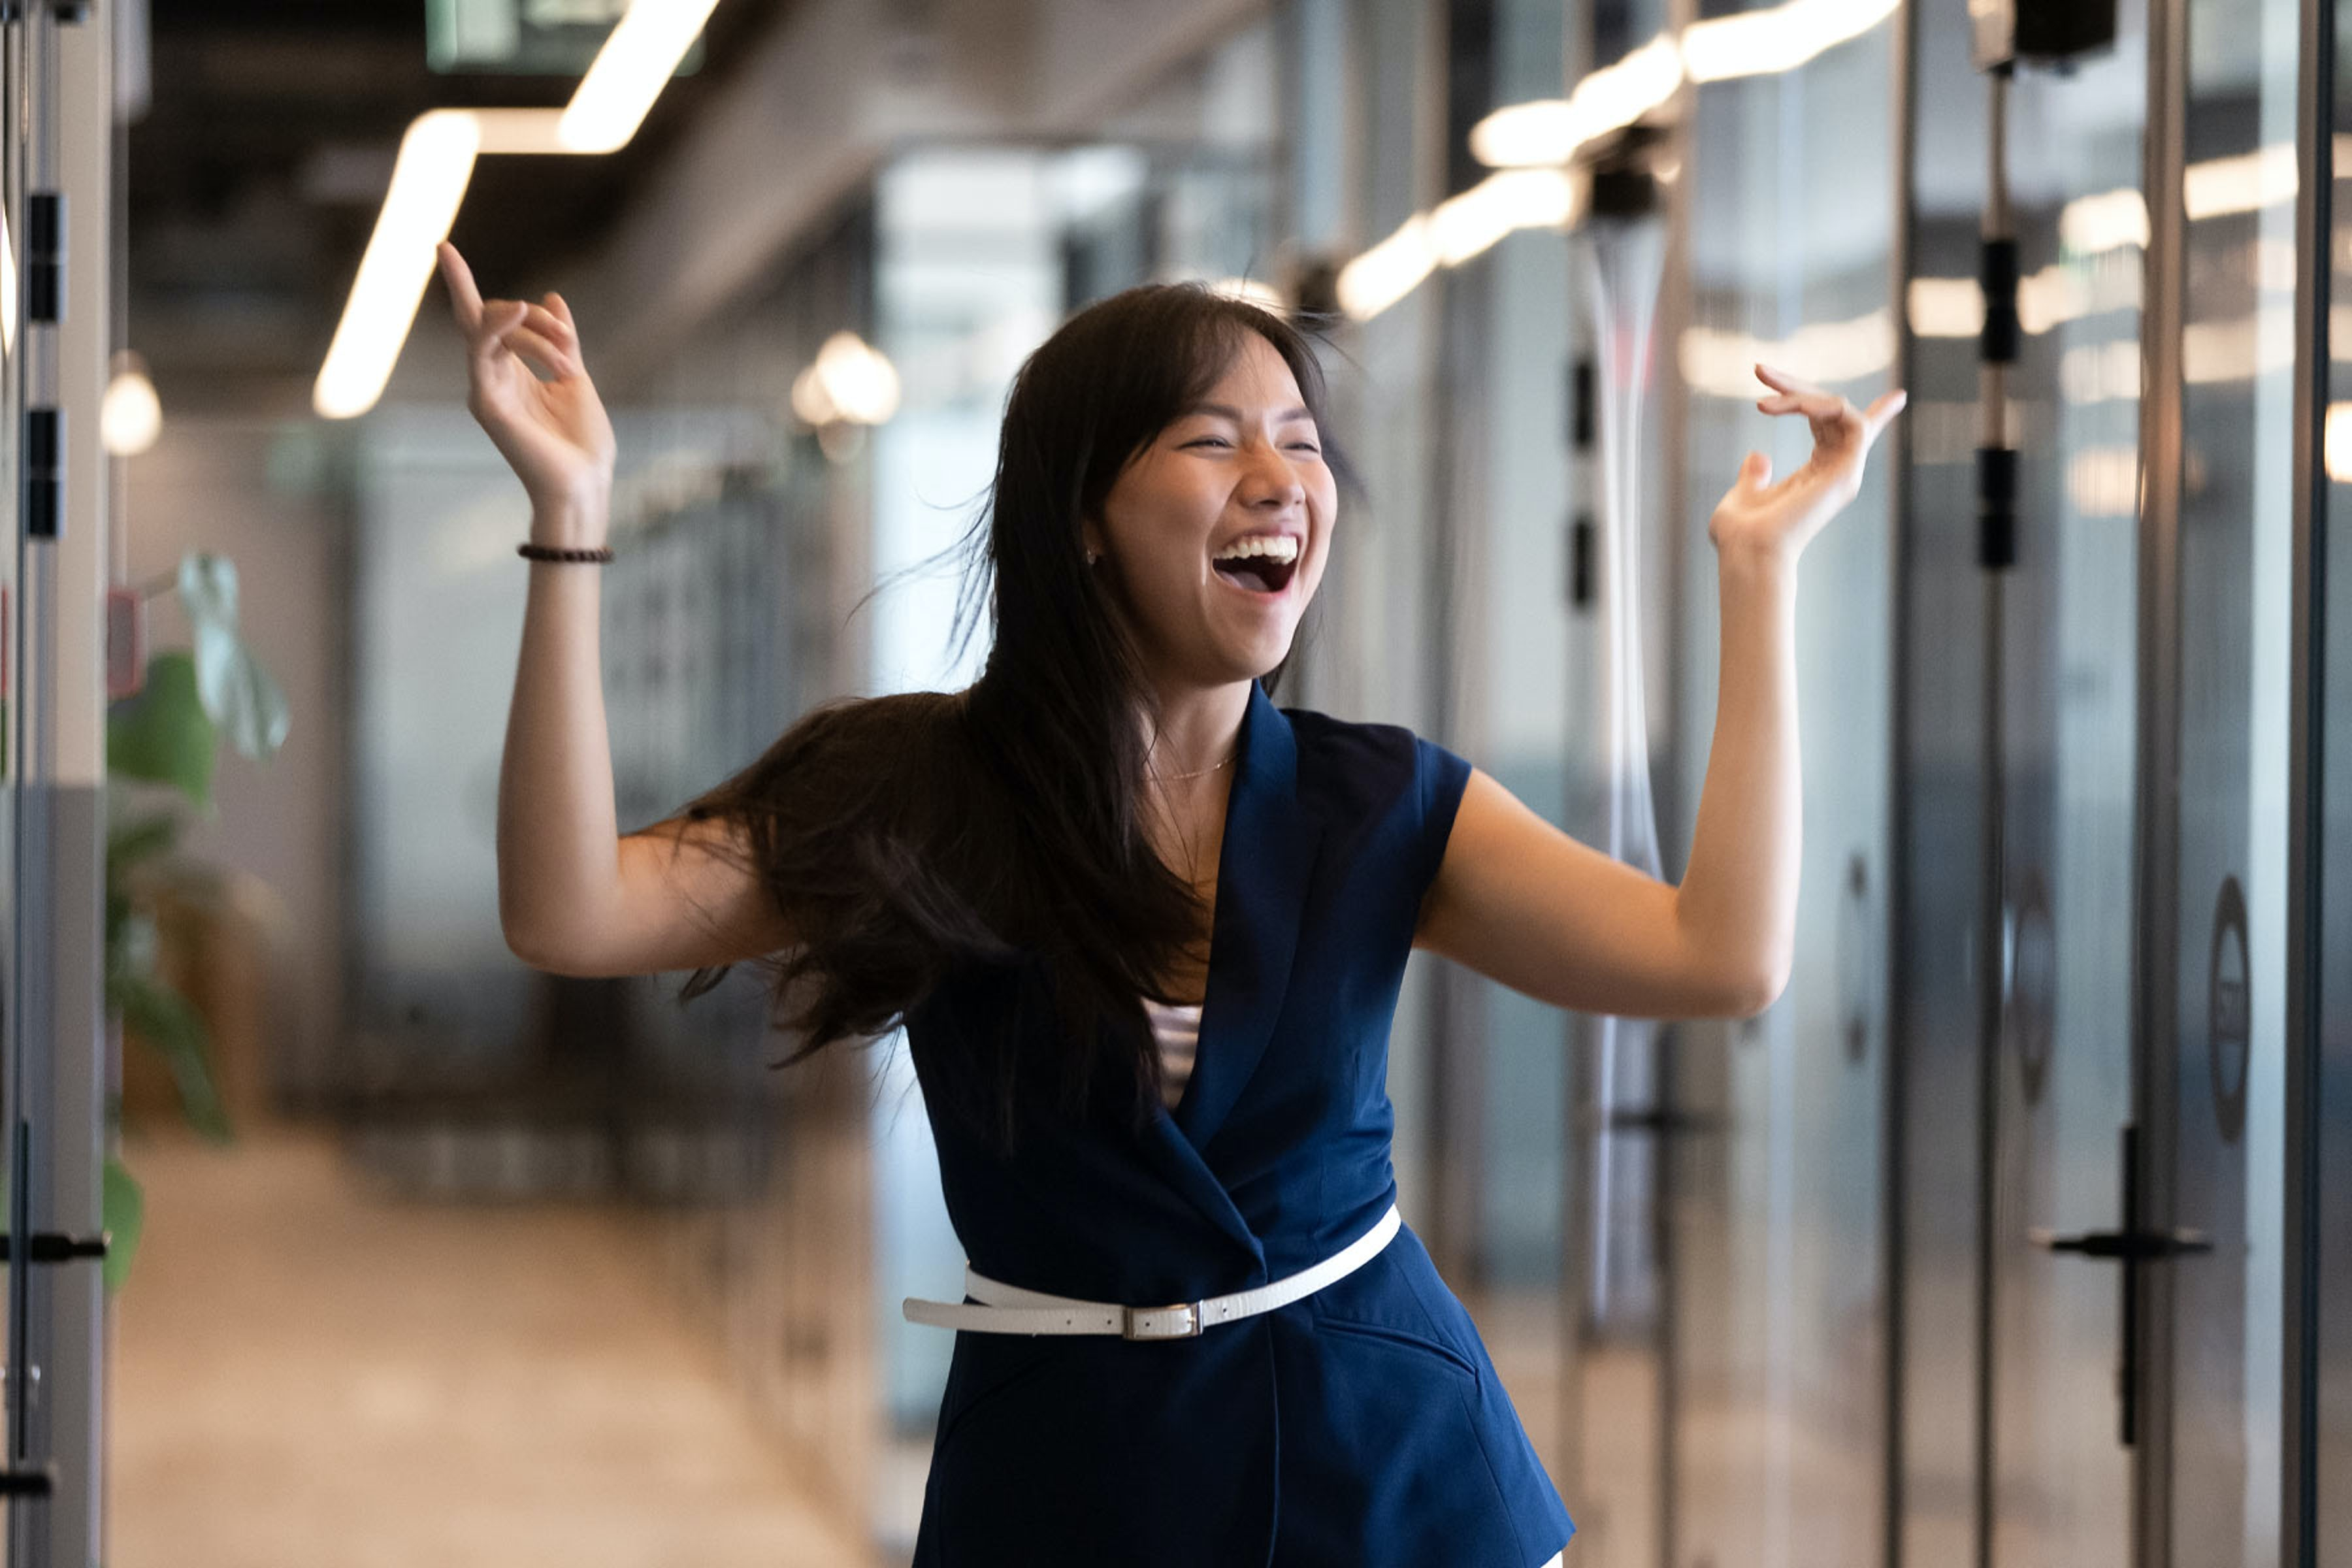 a happy employee smiles and dances down a corridor